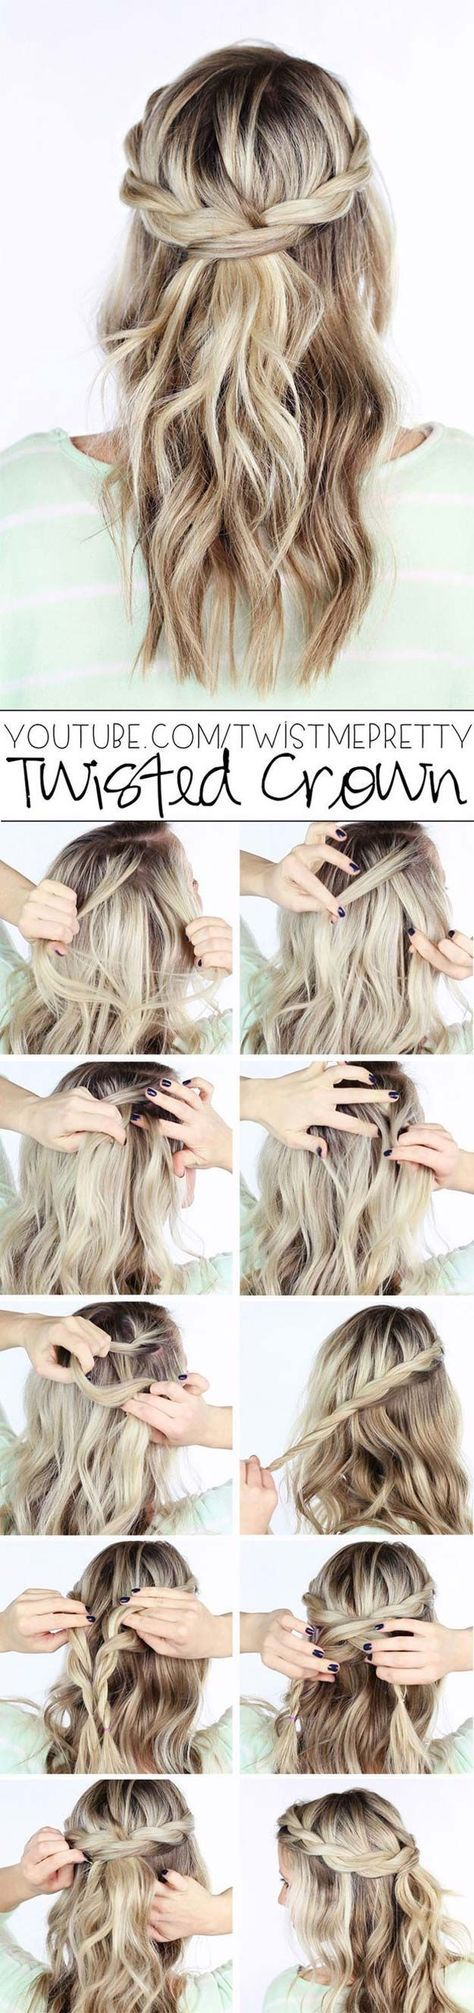 Diy Hairstyles twisted crown braid 10 diy hairstyles for long hair 41 Diy Cool Easy Hairstyles That Real People Can Actually Do At Home